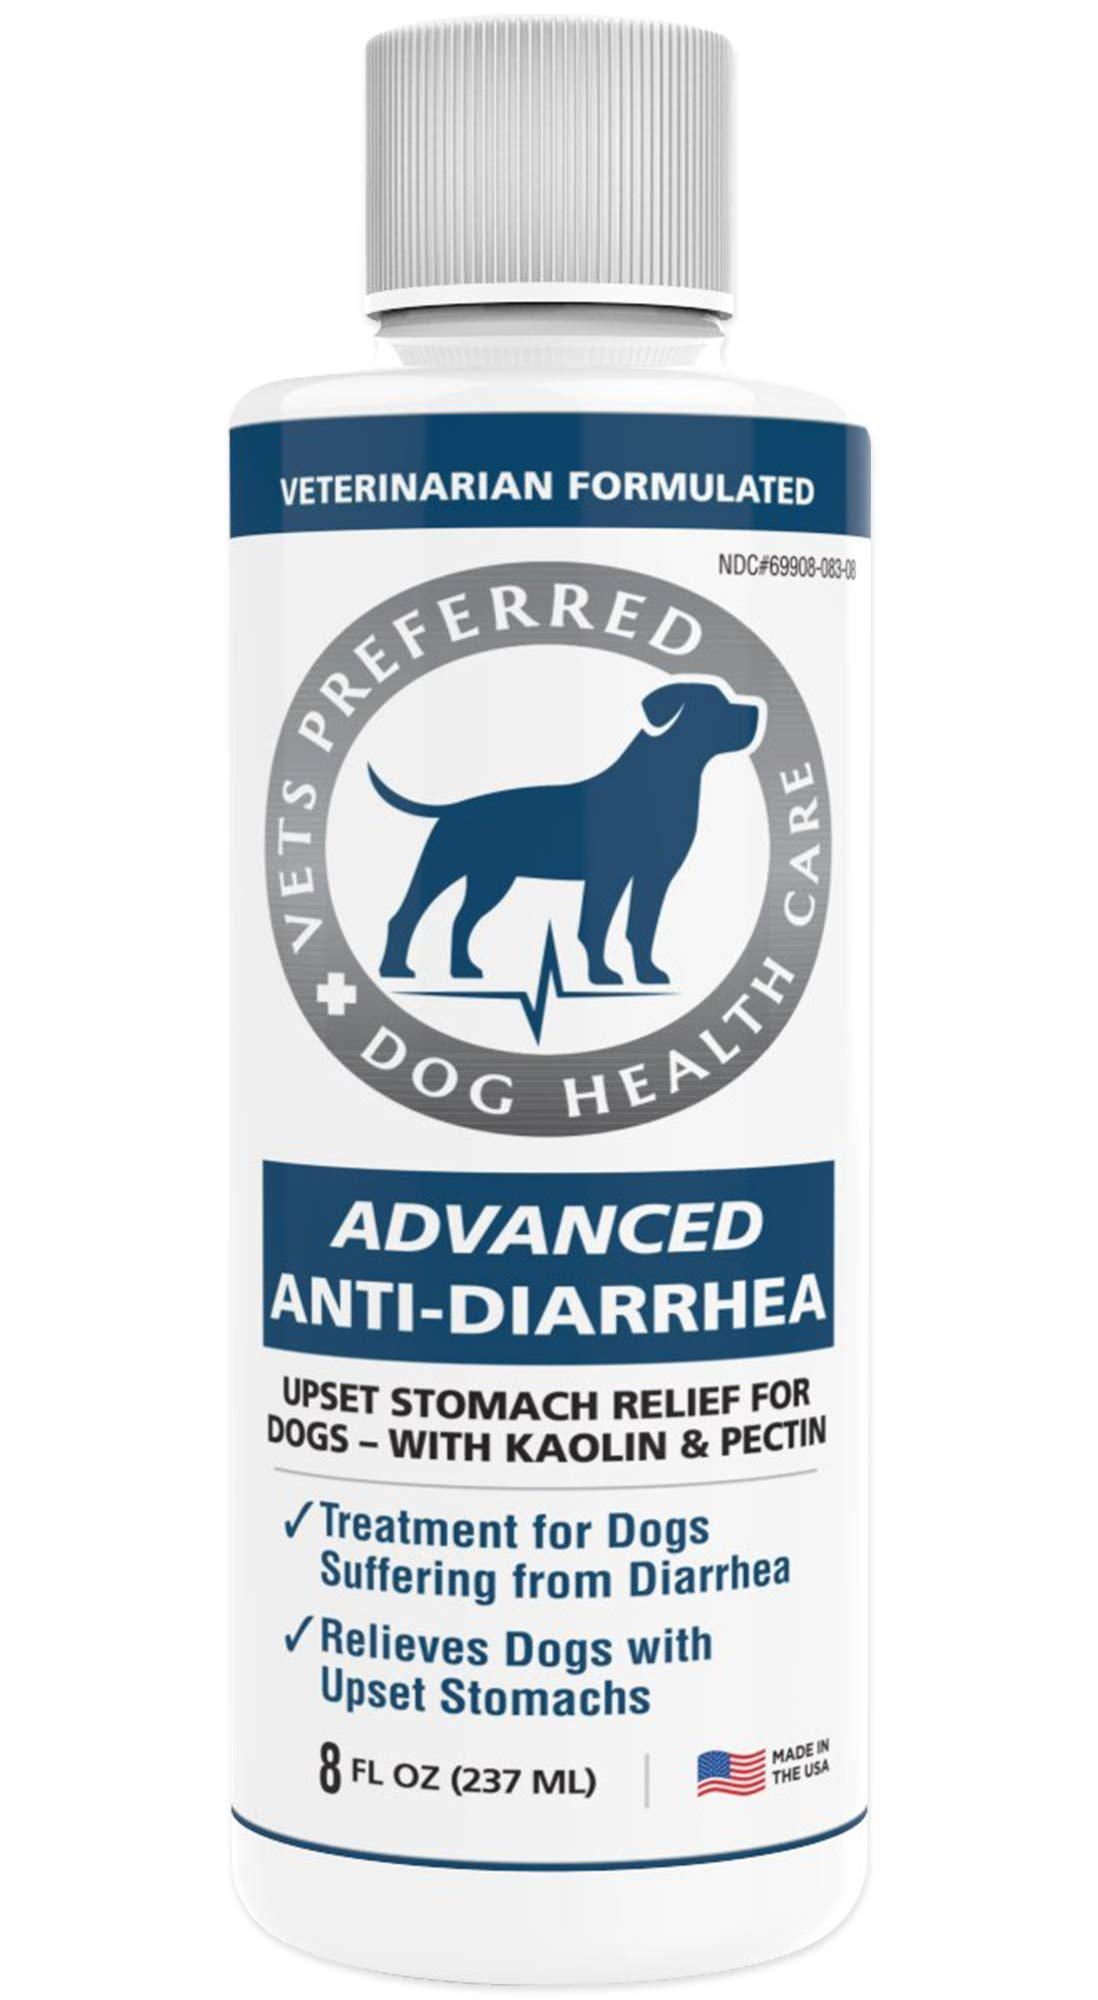 Vets Preferred Advanced Anti Diarrhea Liquid   Veterinarian-Grade Anti Diarrhea Dogs Solution   Fast Relief for Dog Diarrhea, Upset Stomach, Cramping, and Discomfort with Kaolin and Pectin (8 oz.) by Vets Preferred